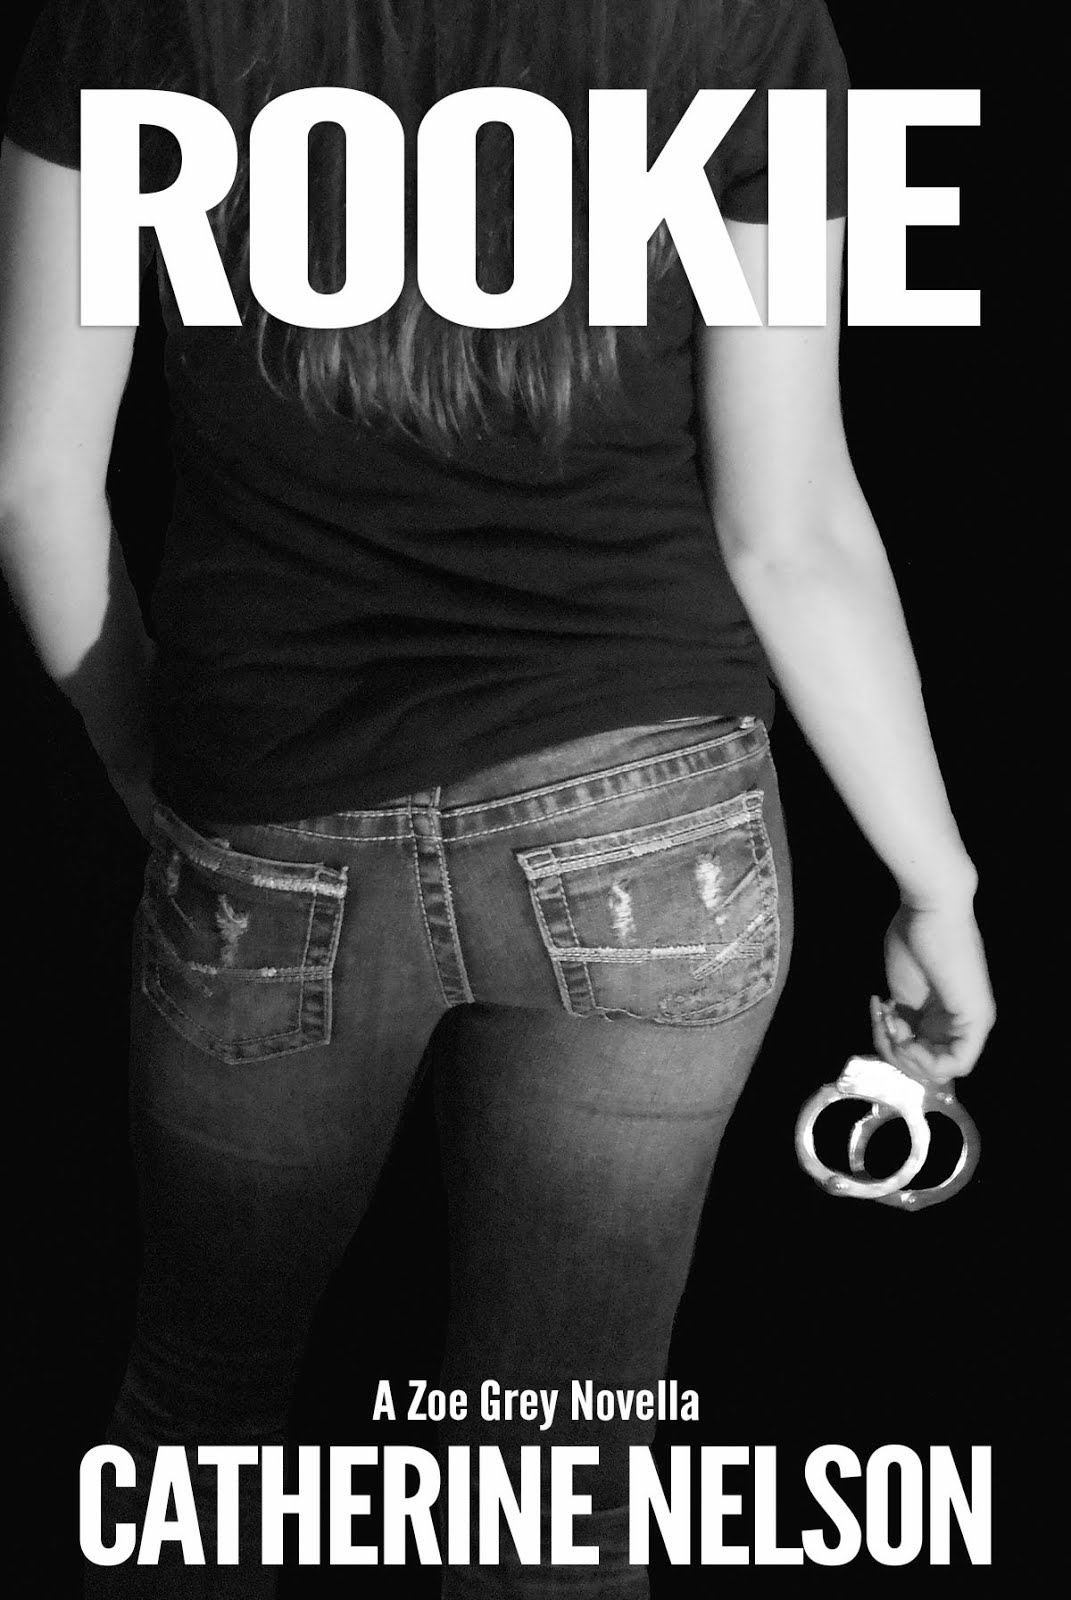 ROOKIE: A Zoe Grey Novella